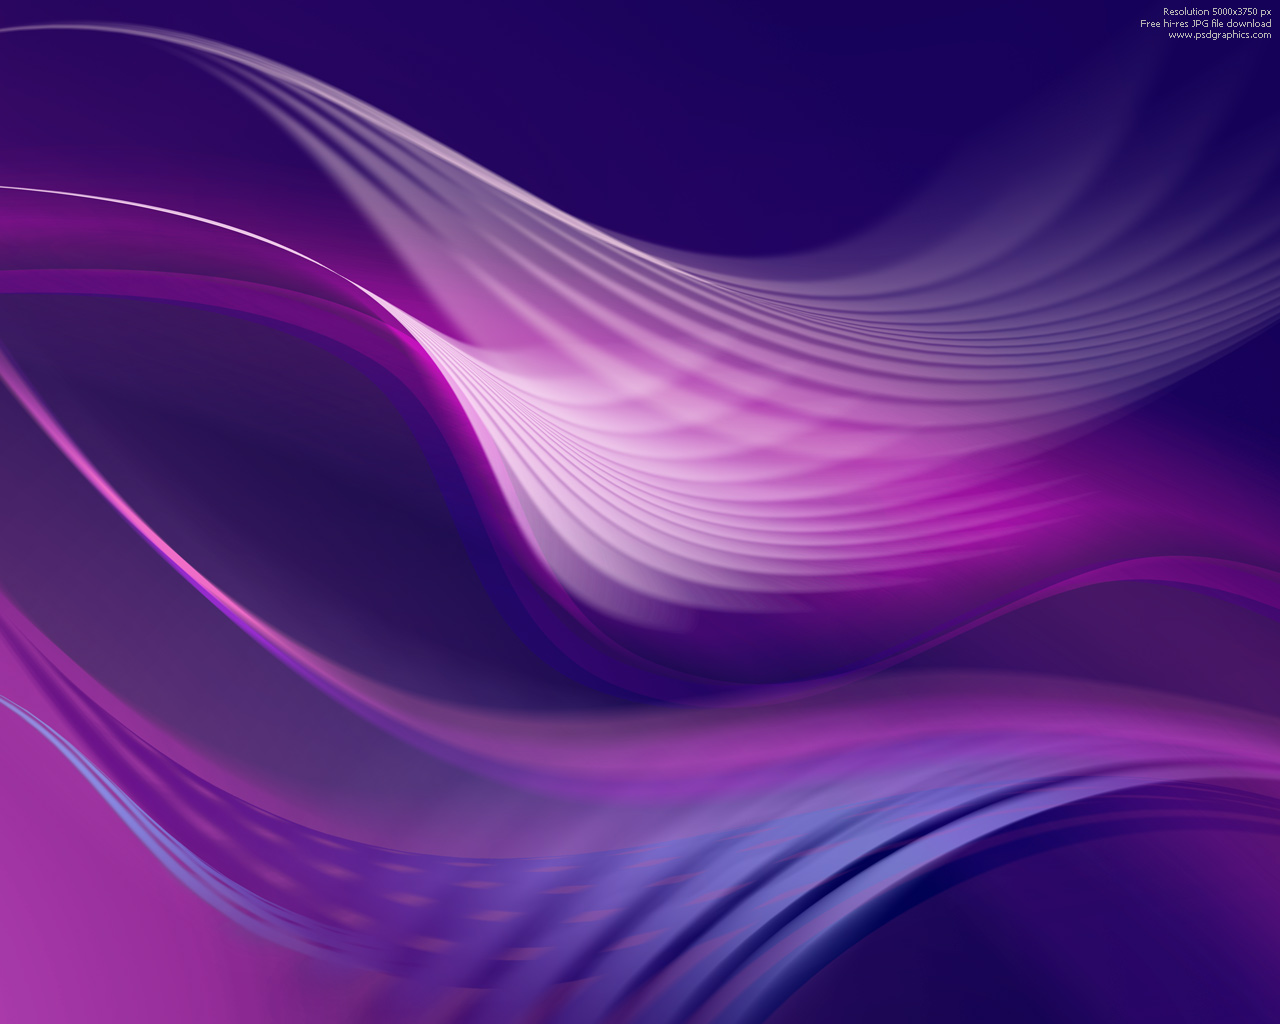 Purple Wallpaper - Abstract Purple Background